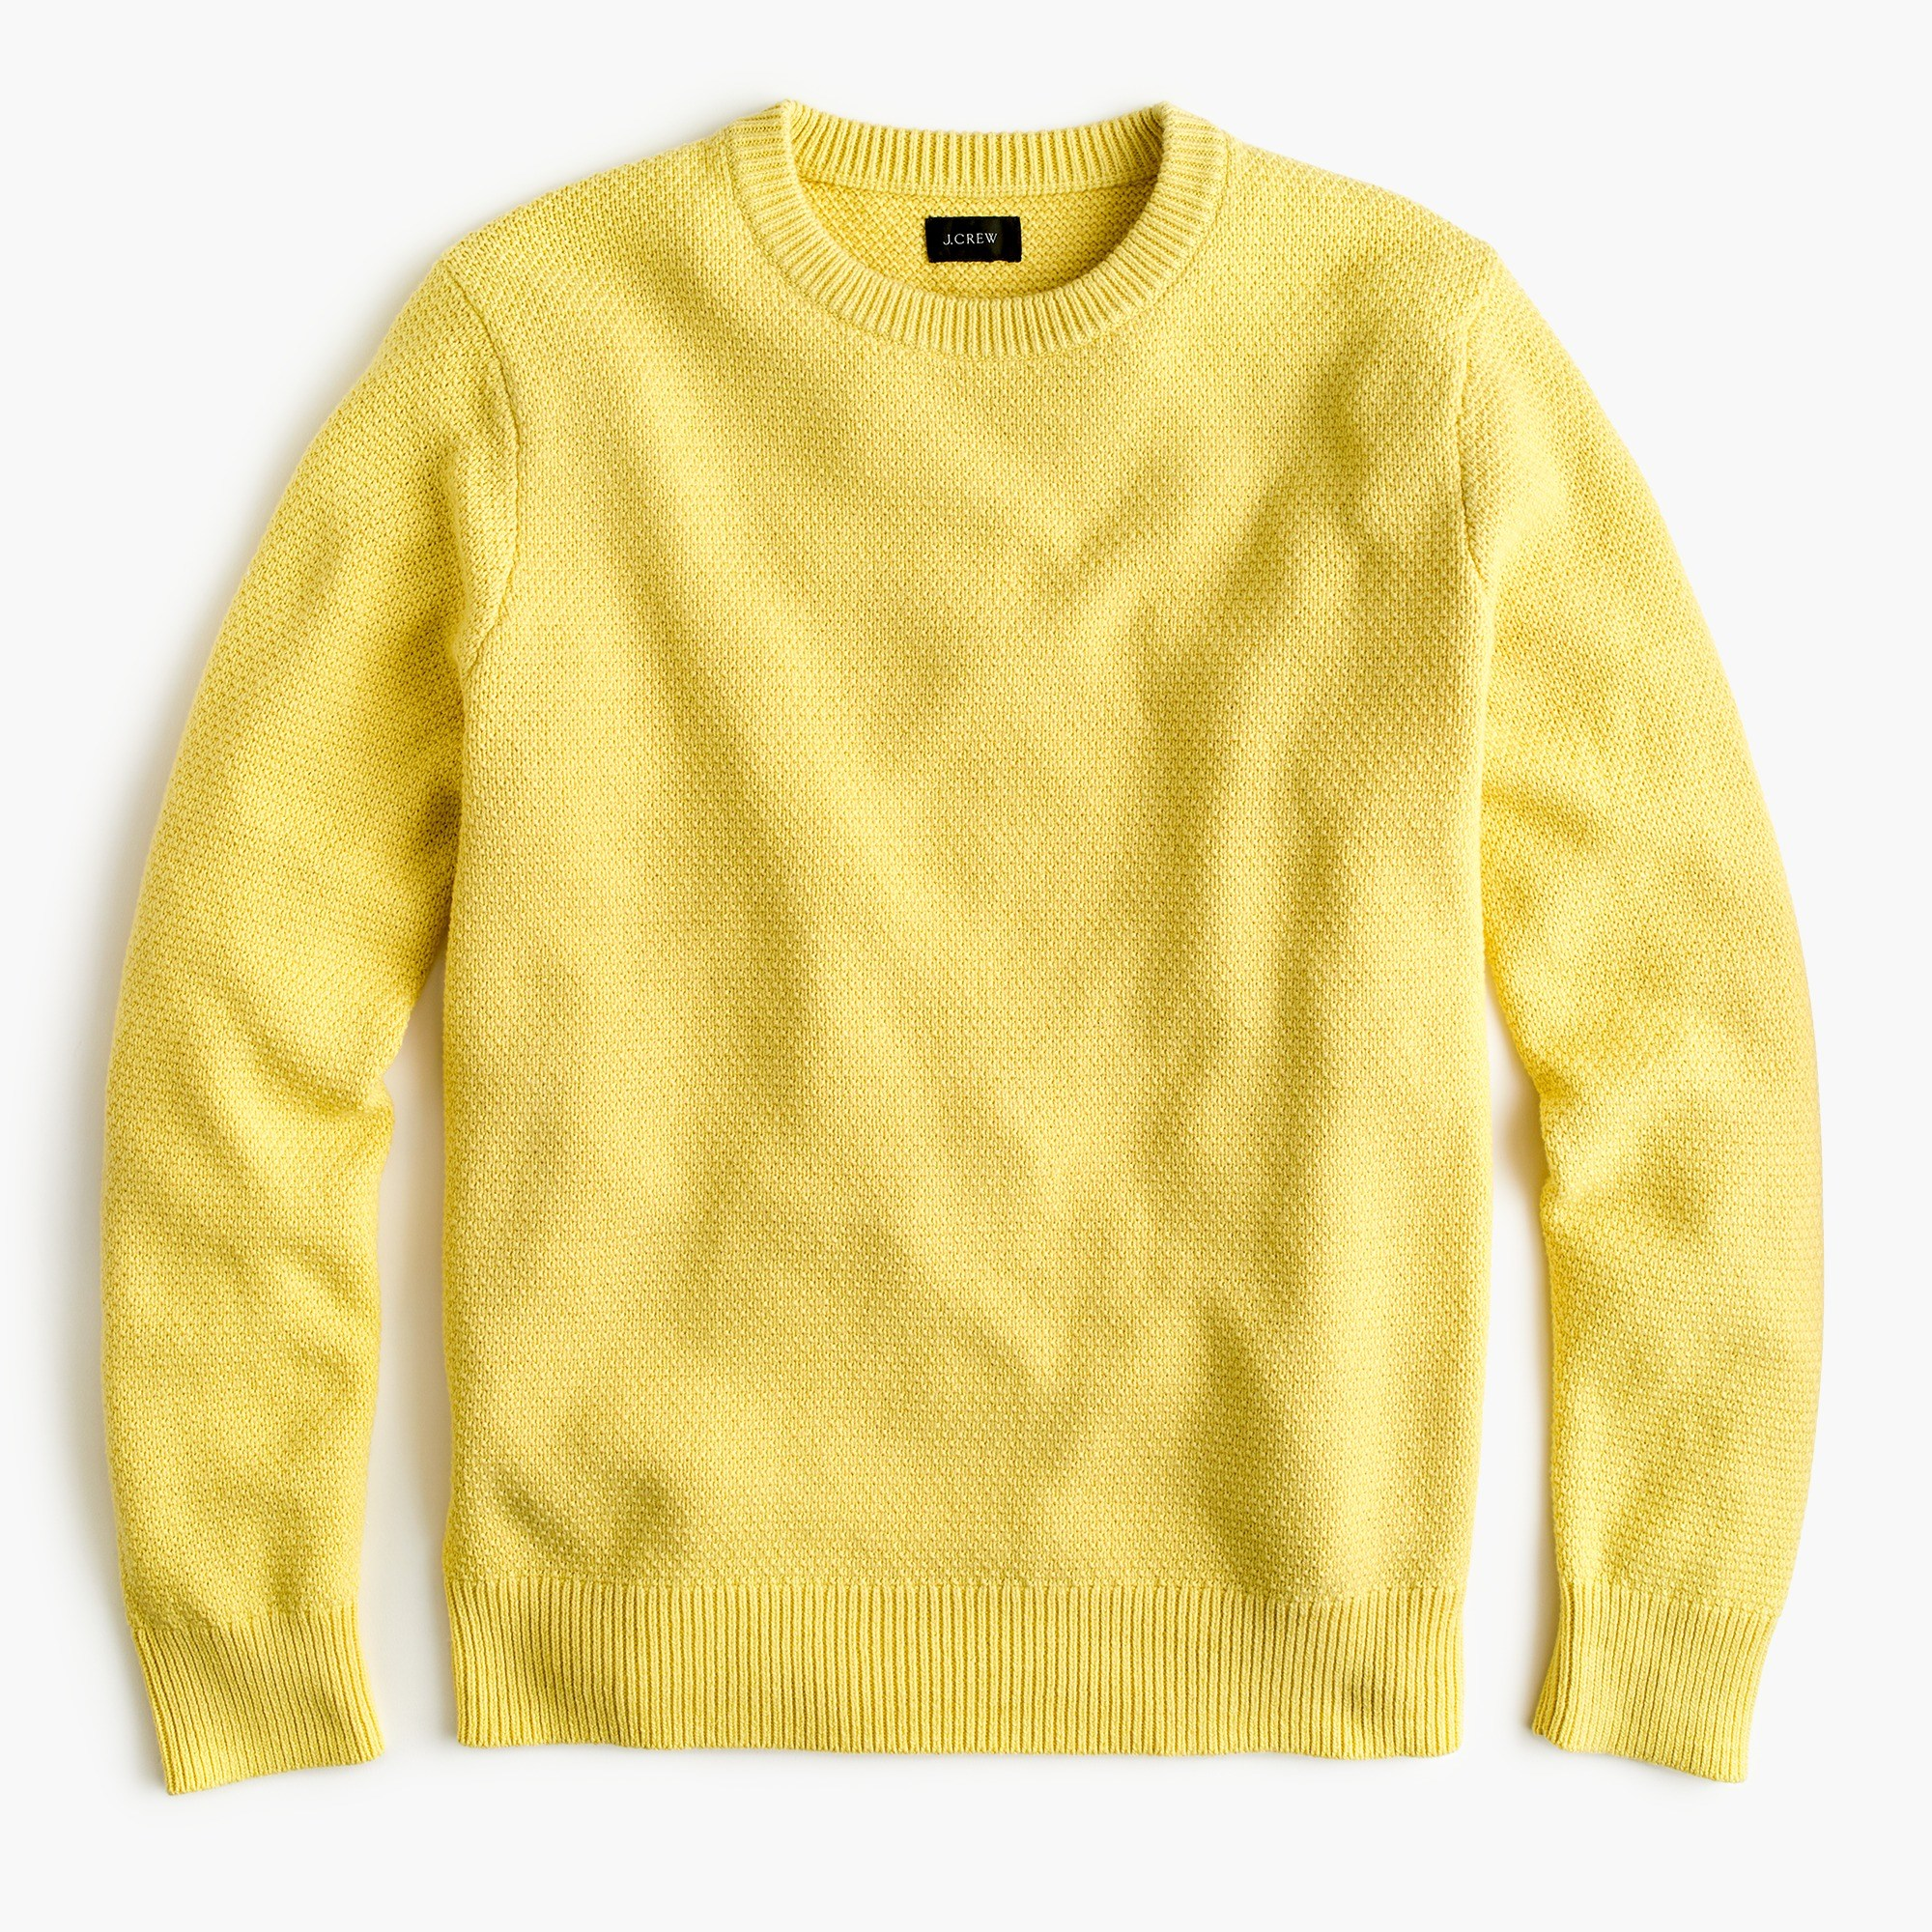 Men's Sweaters - Cardigans, V-Necks & More | J.Crew